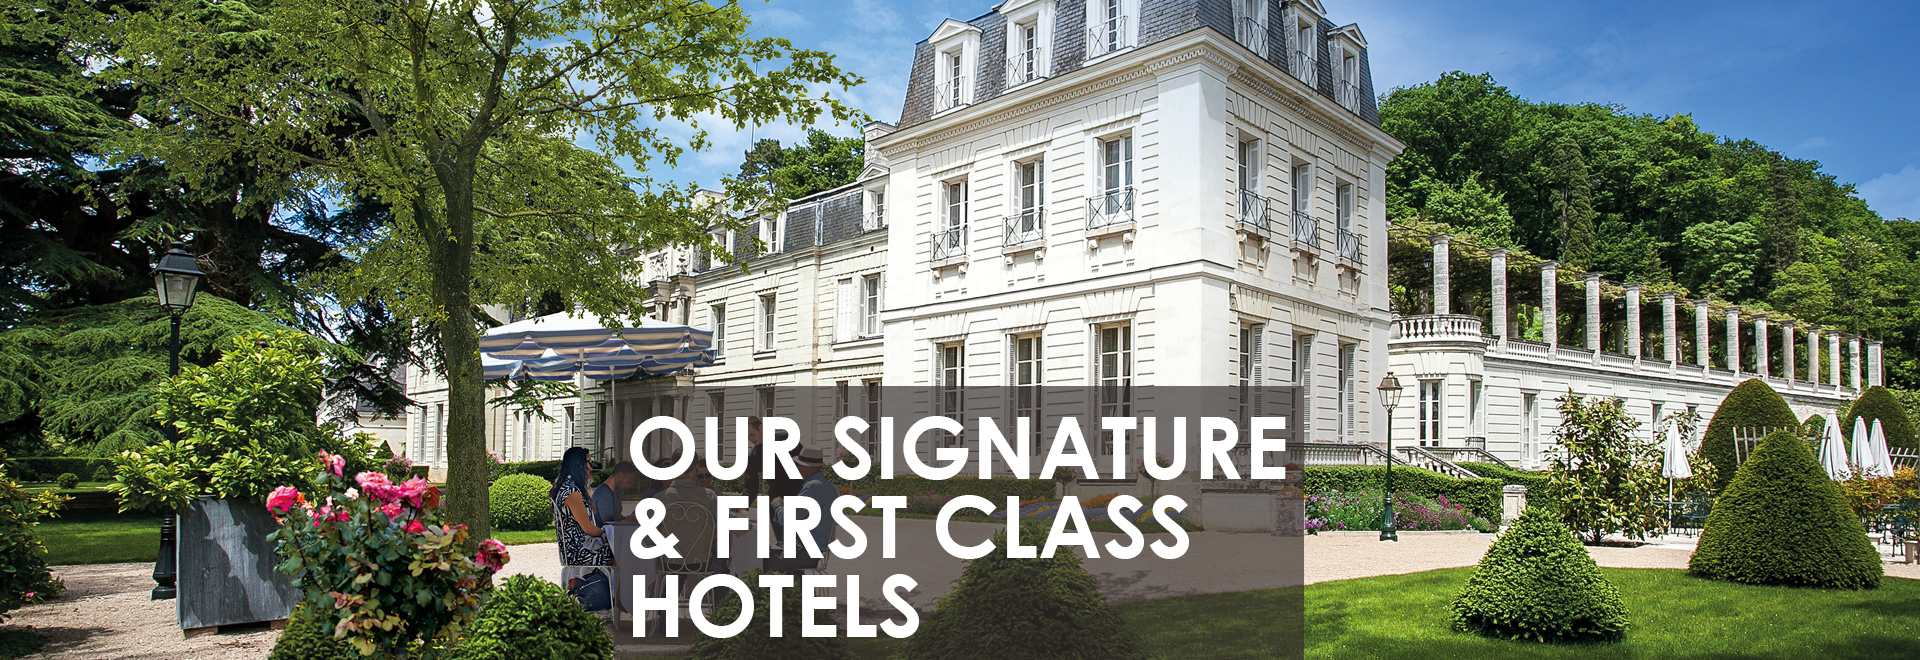 Our Signature & First Class Hotels1